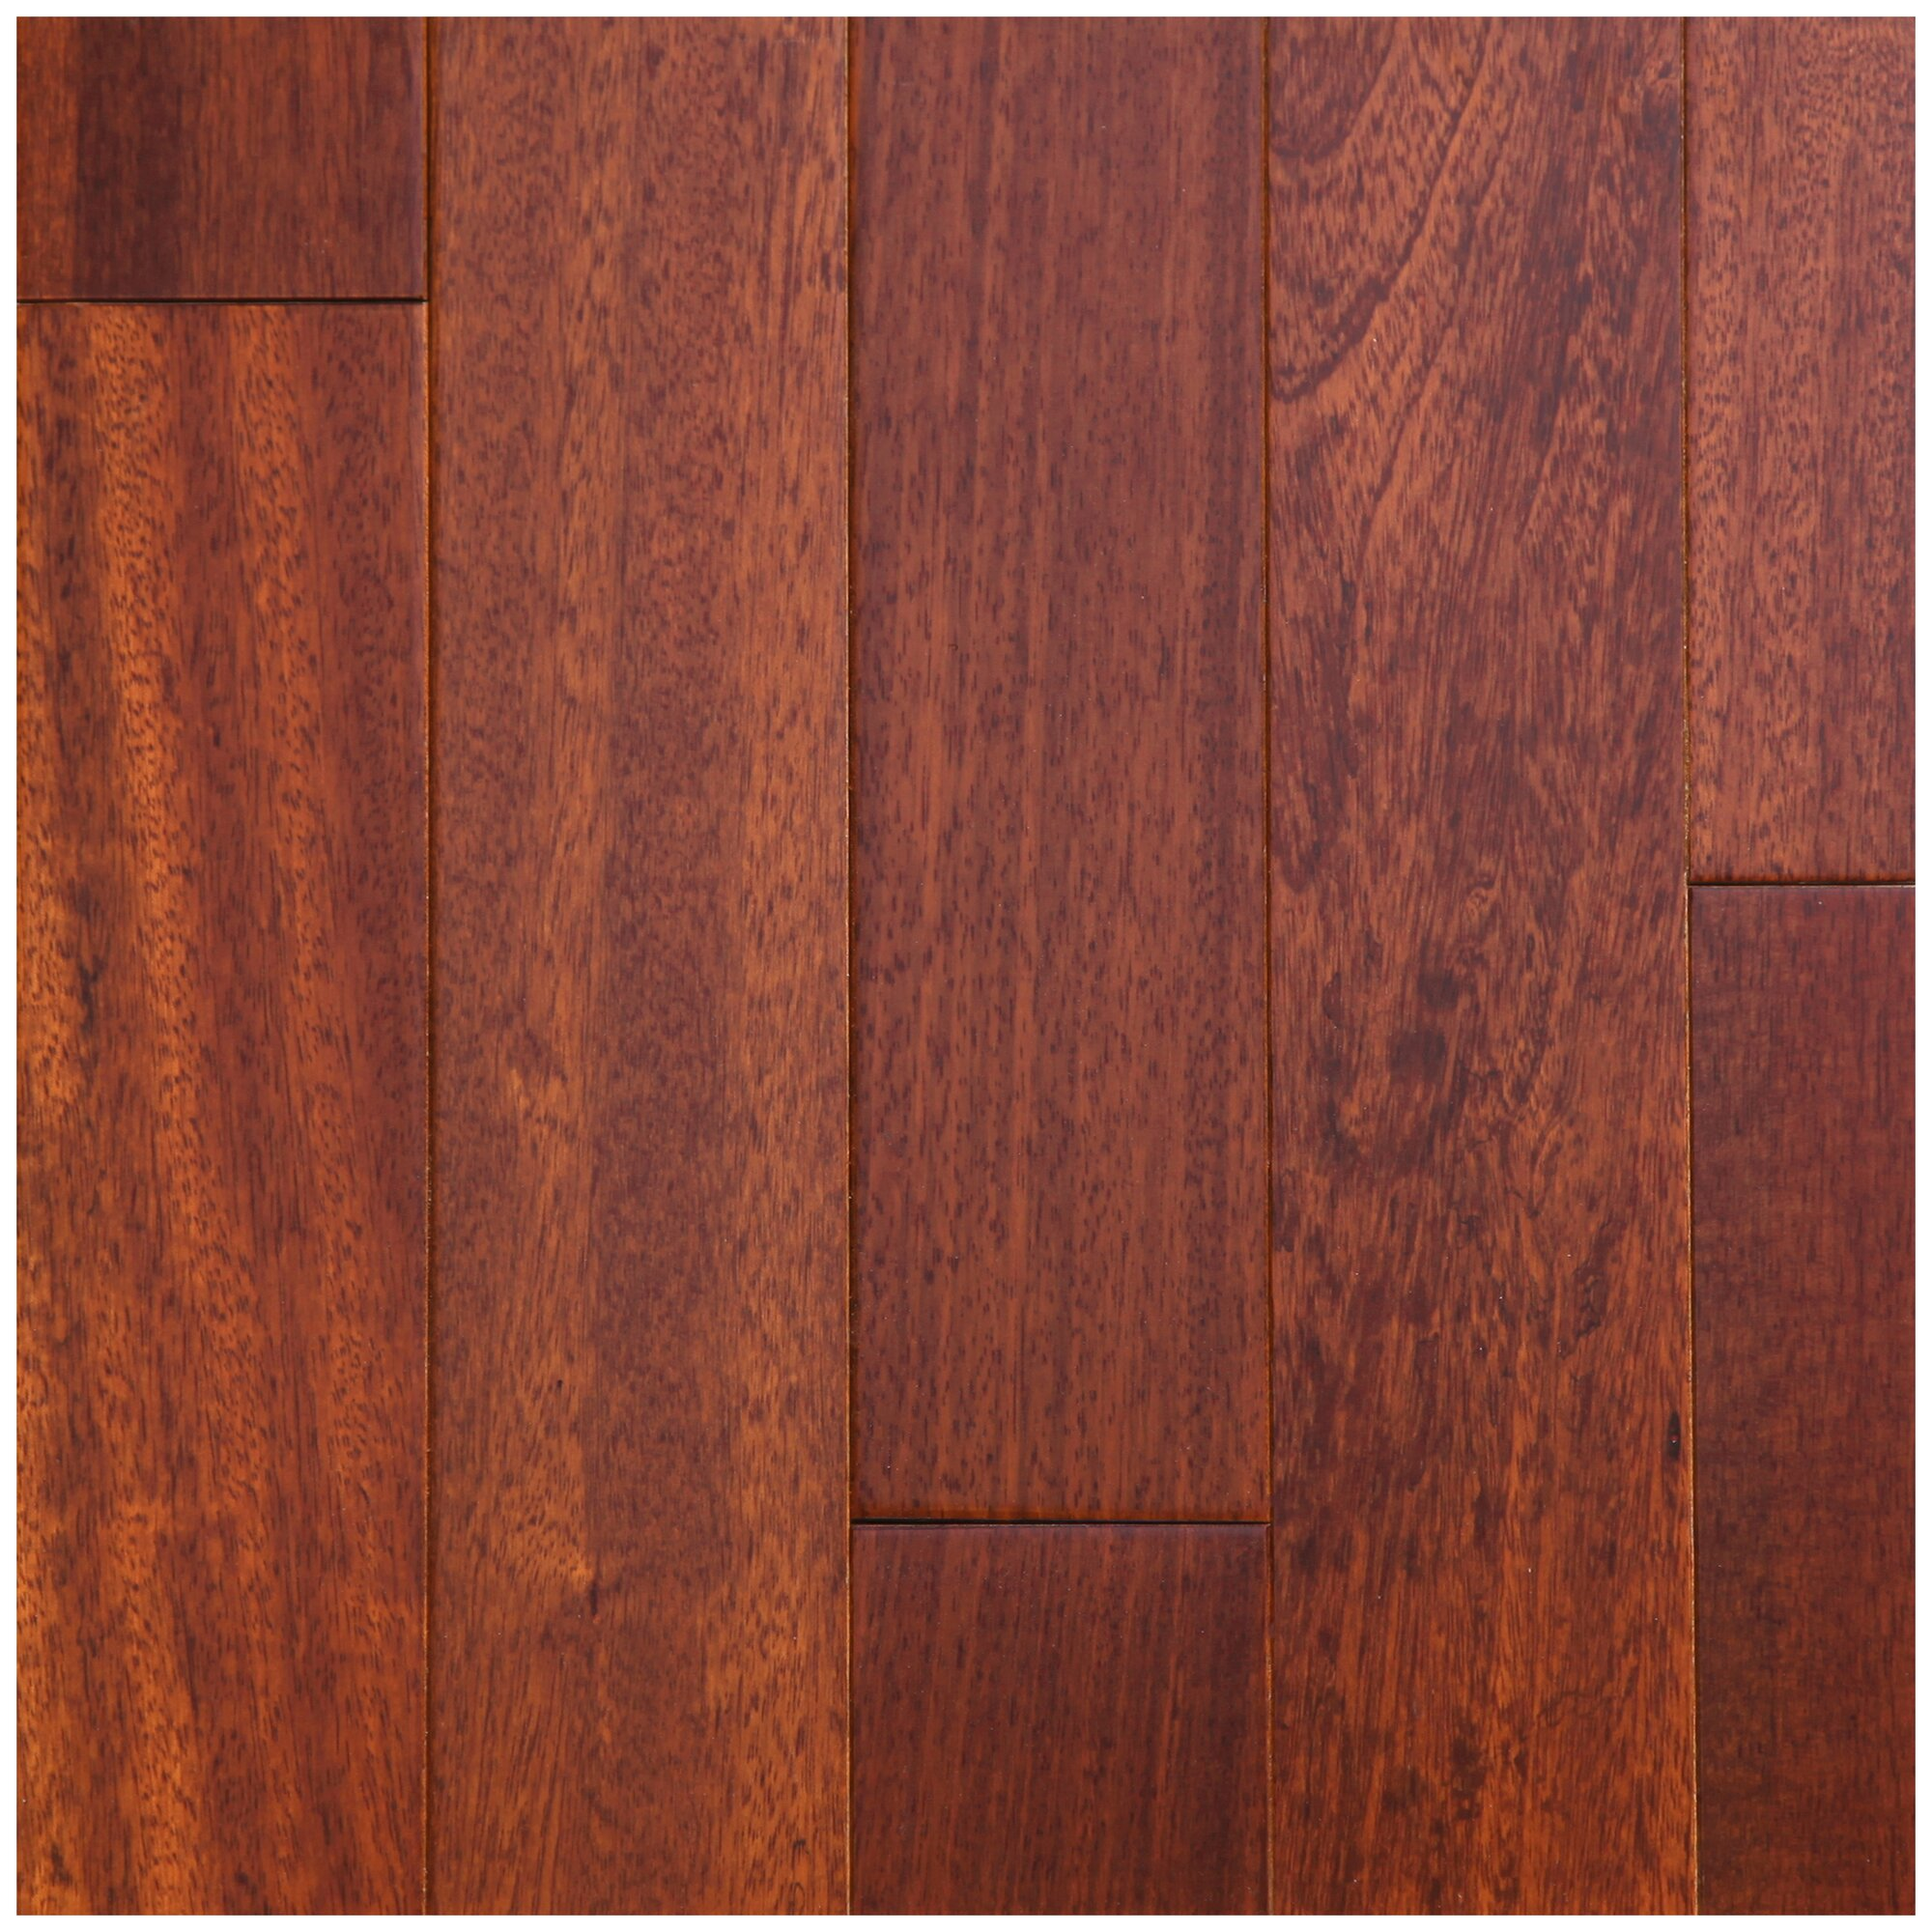 Cherry Hardwood Flooring american cherry hardwood flooring 3 12 Engineered Brazilian Cherry Hardwood Flooring In Classic